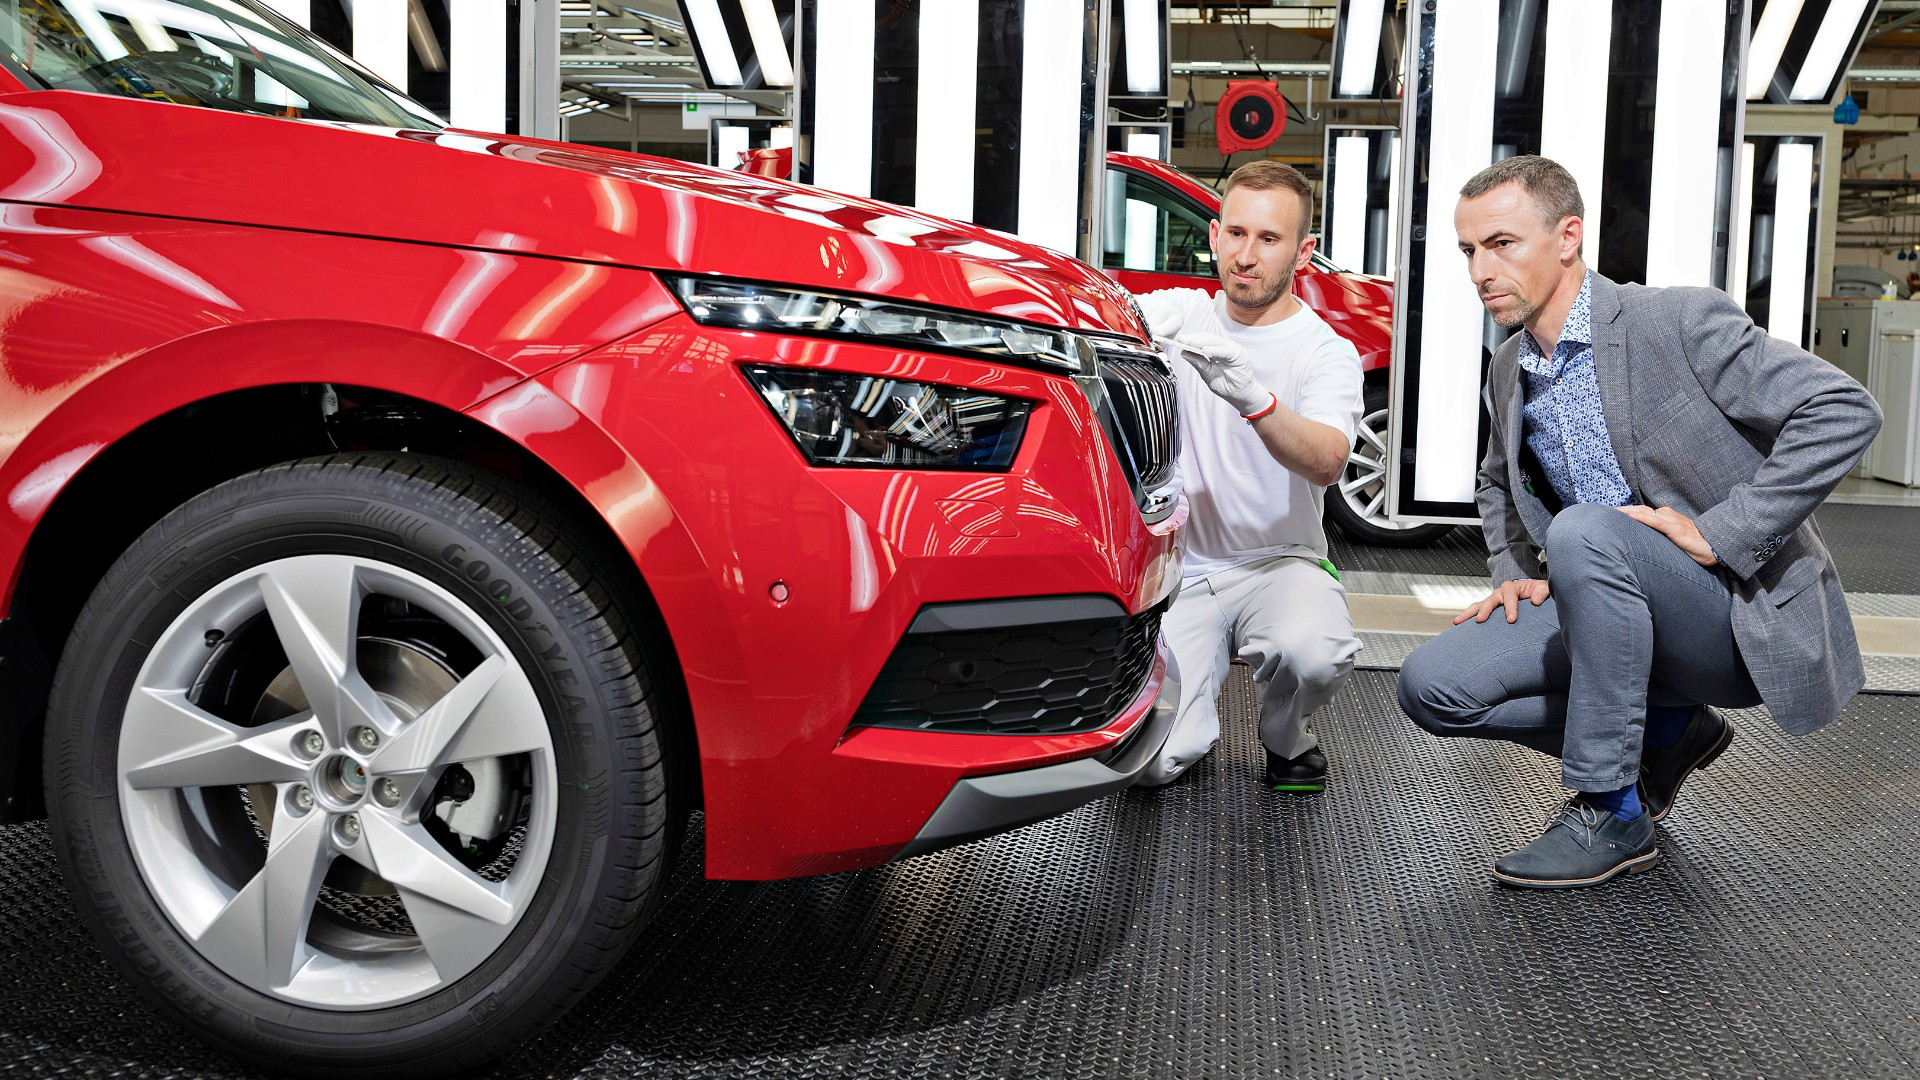 Skoda Kamiq small SUV goes into production